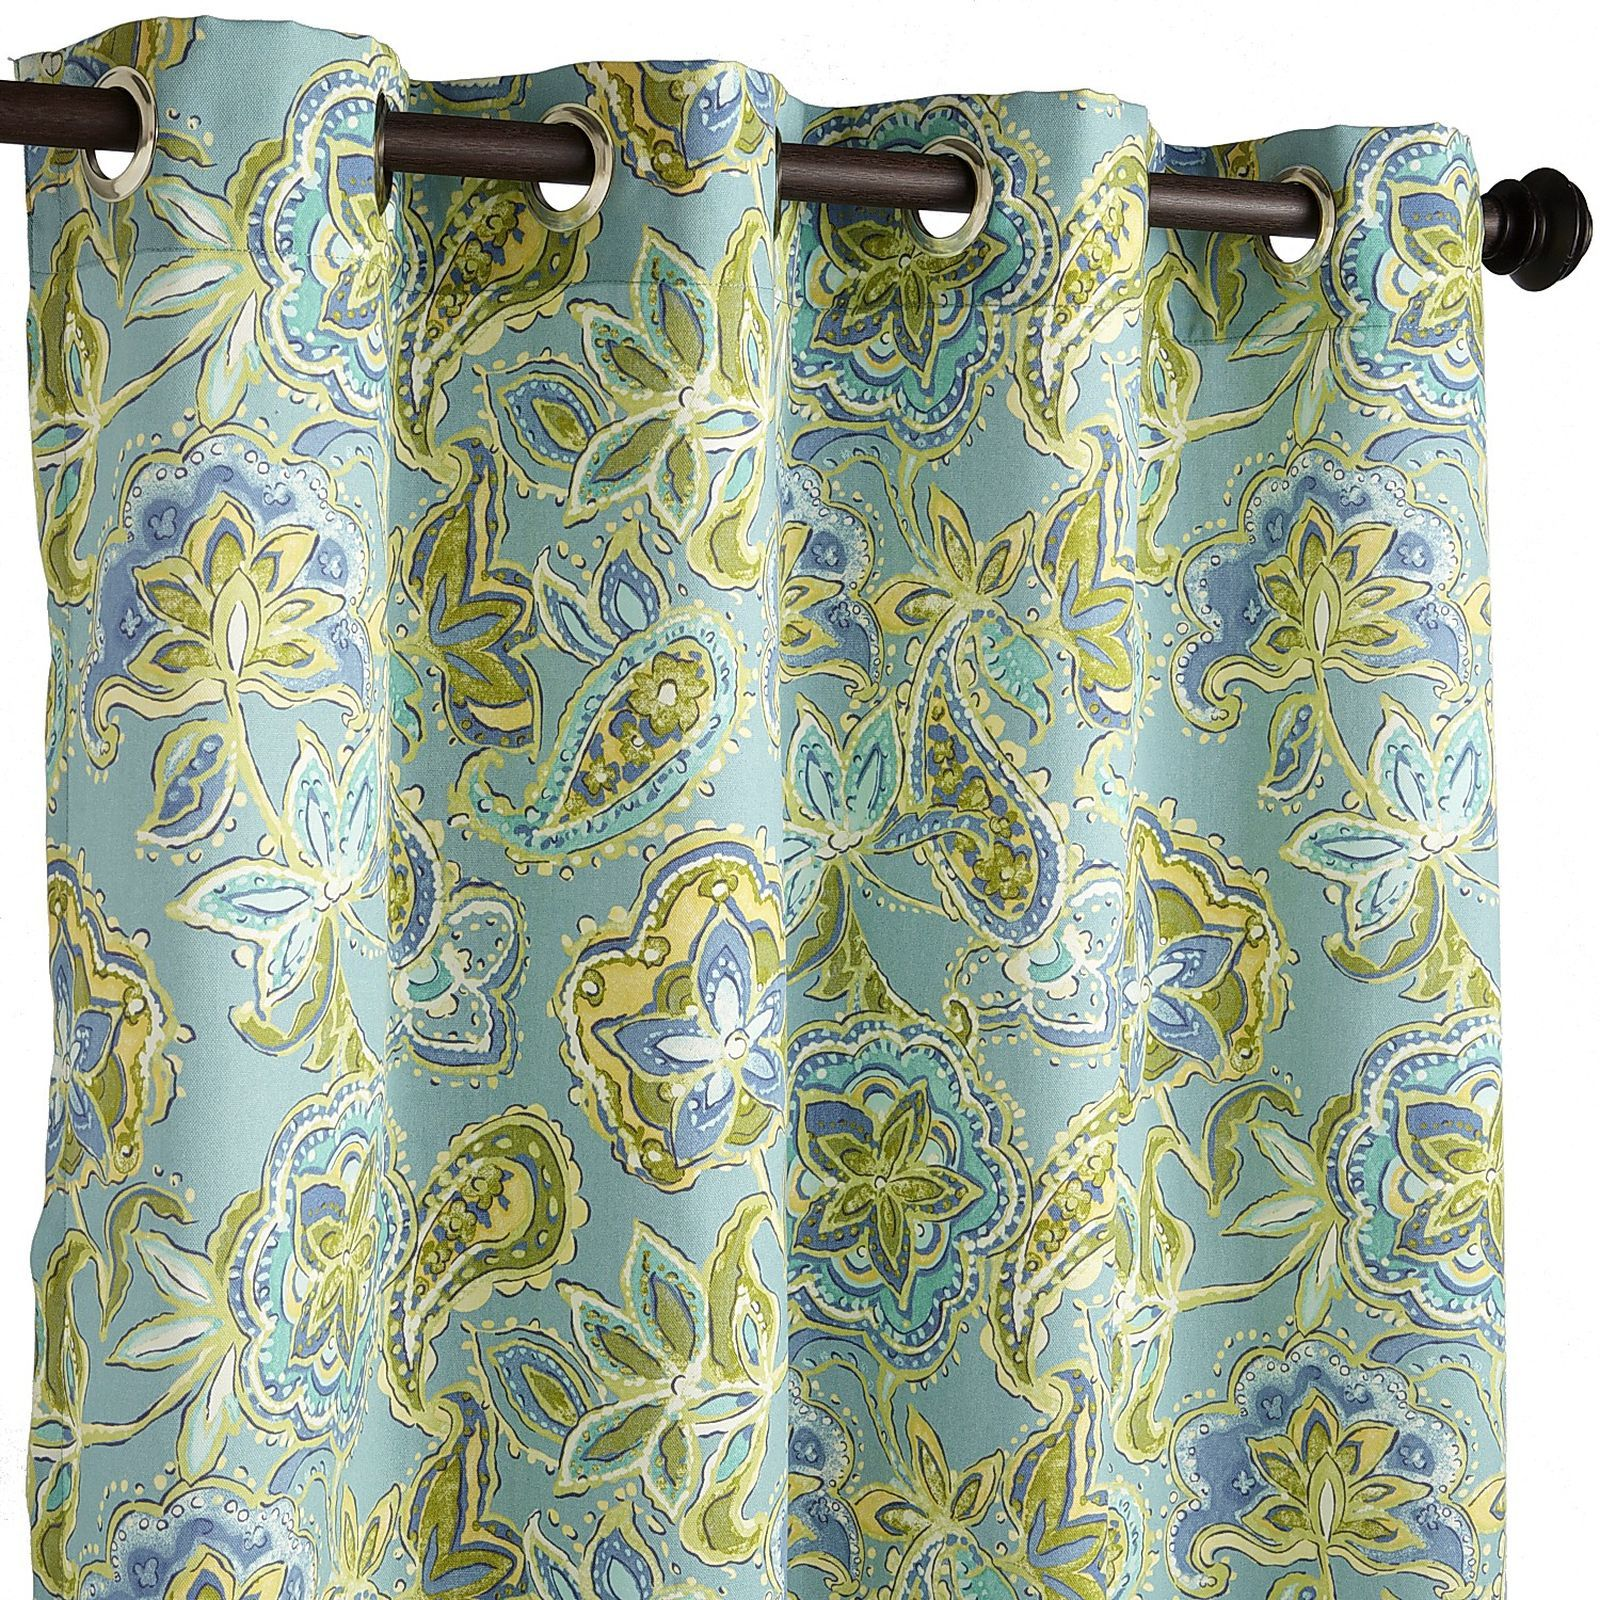 Think of the beach, with a definite summer vibe, and our Loftonaire Floral curtains come to mind. The opaque woven fabric, awash in an aqua, lime and blue floral print, is UV-treated and features rust-resistant, easy-install grommets. Hang them outside and you'll be kicking back in no time.